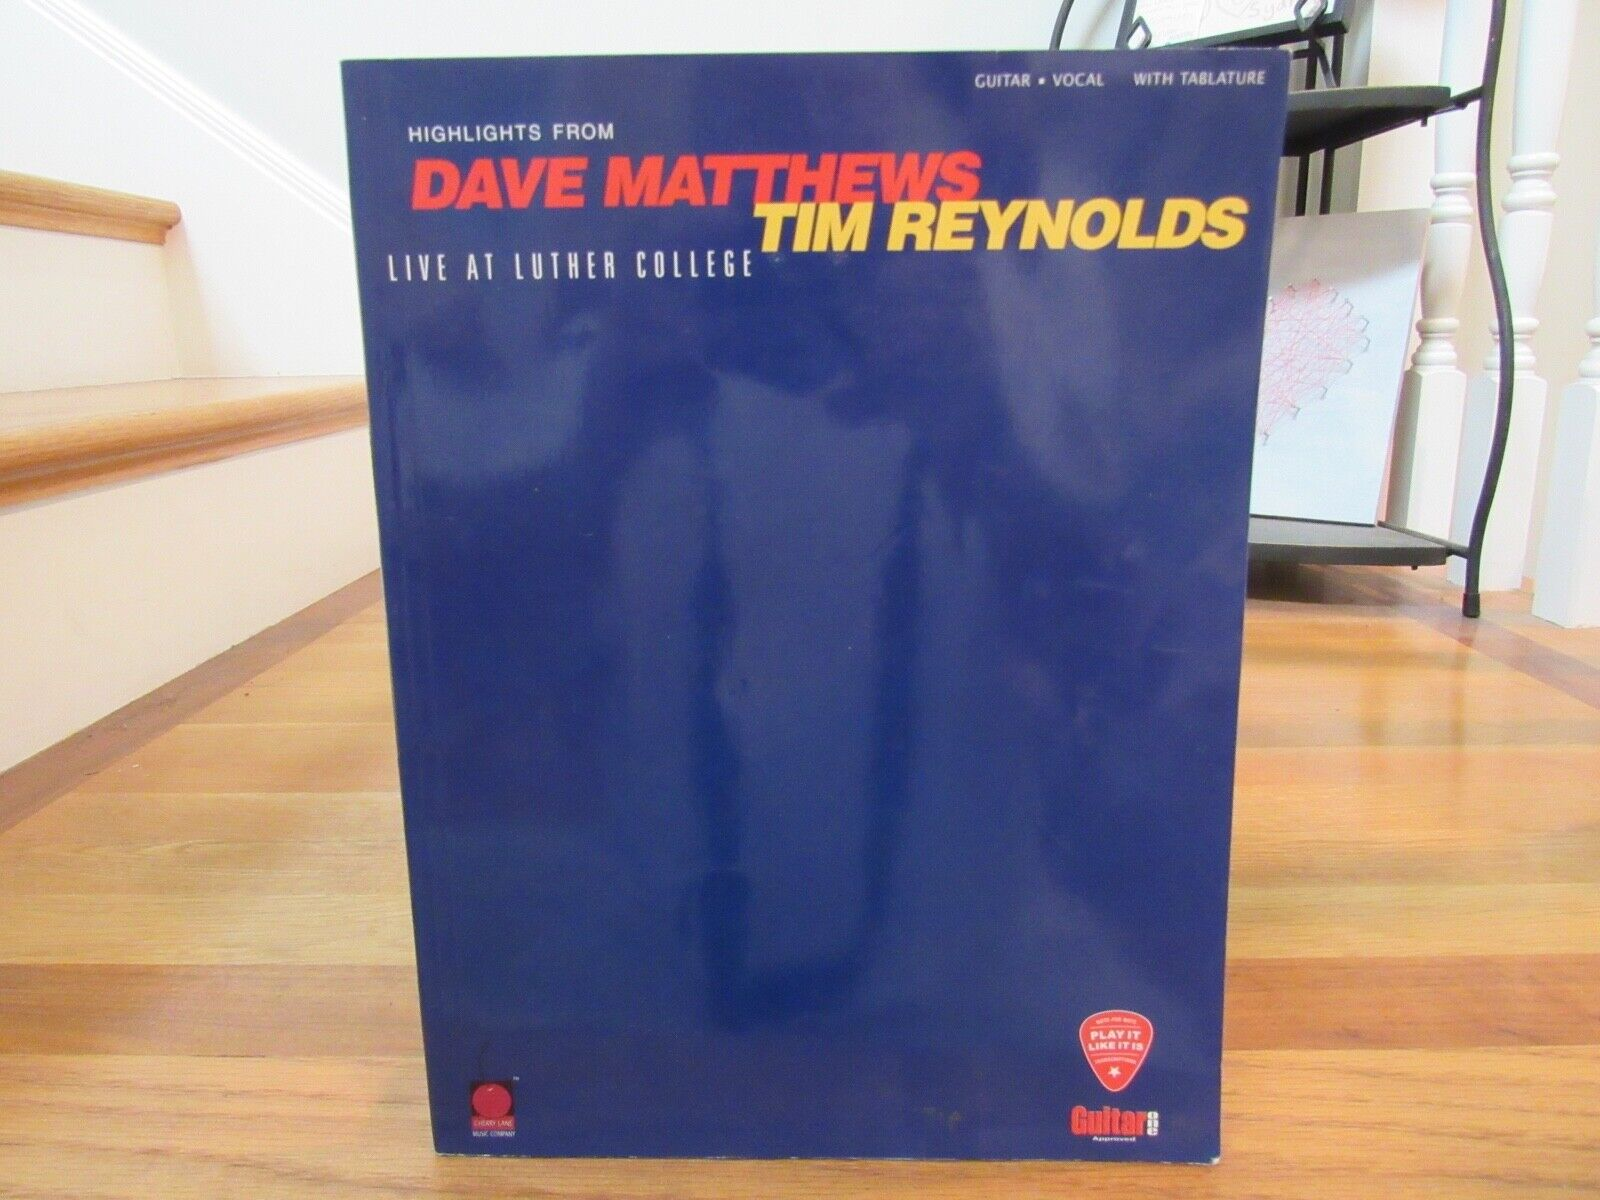 Highlights From Dave Matthews Tim Reynolds Live At Luther College Tab Book - $9.99